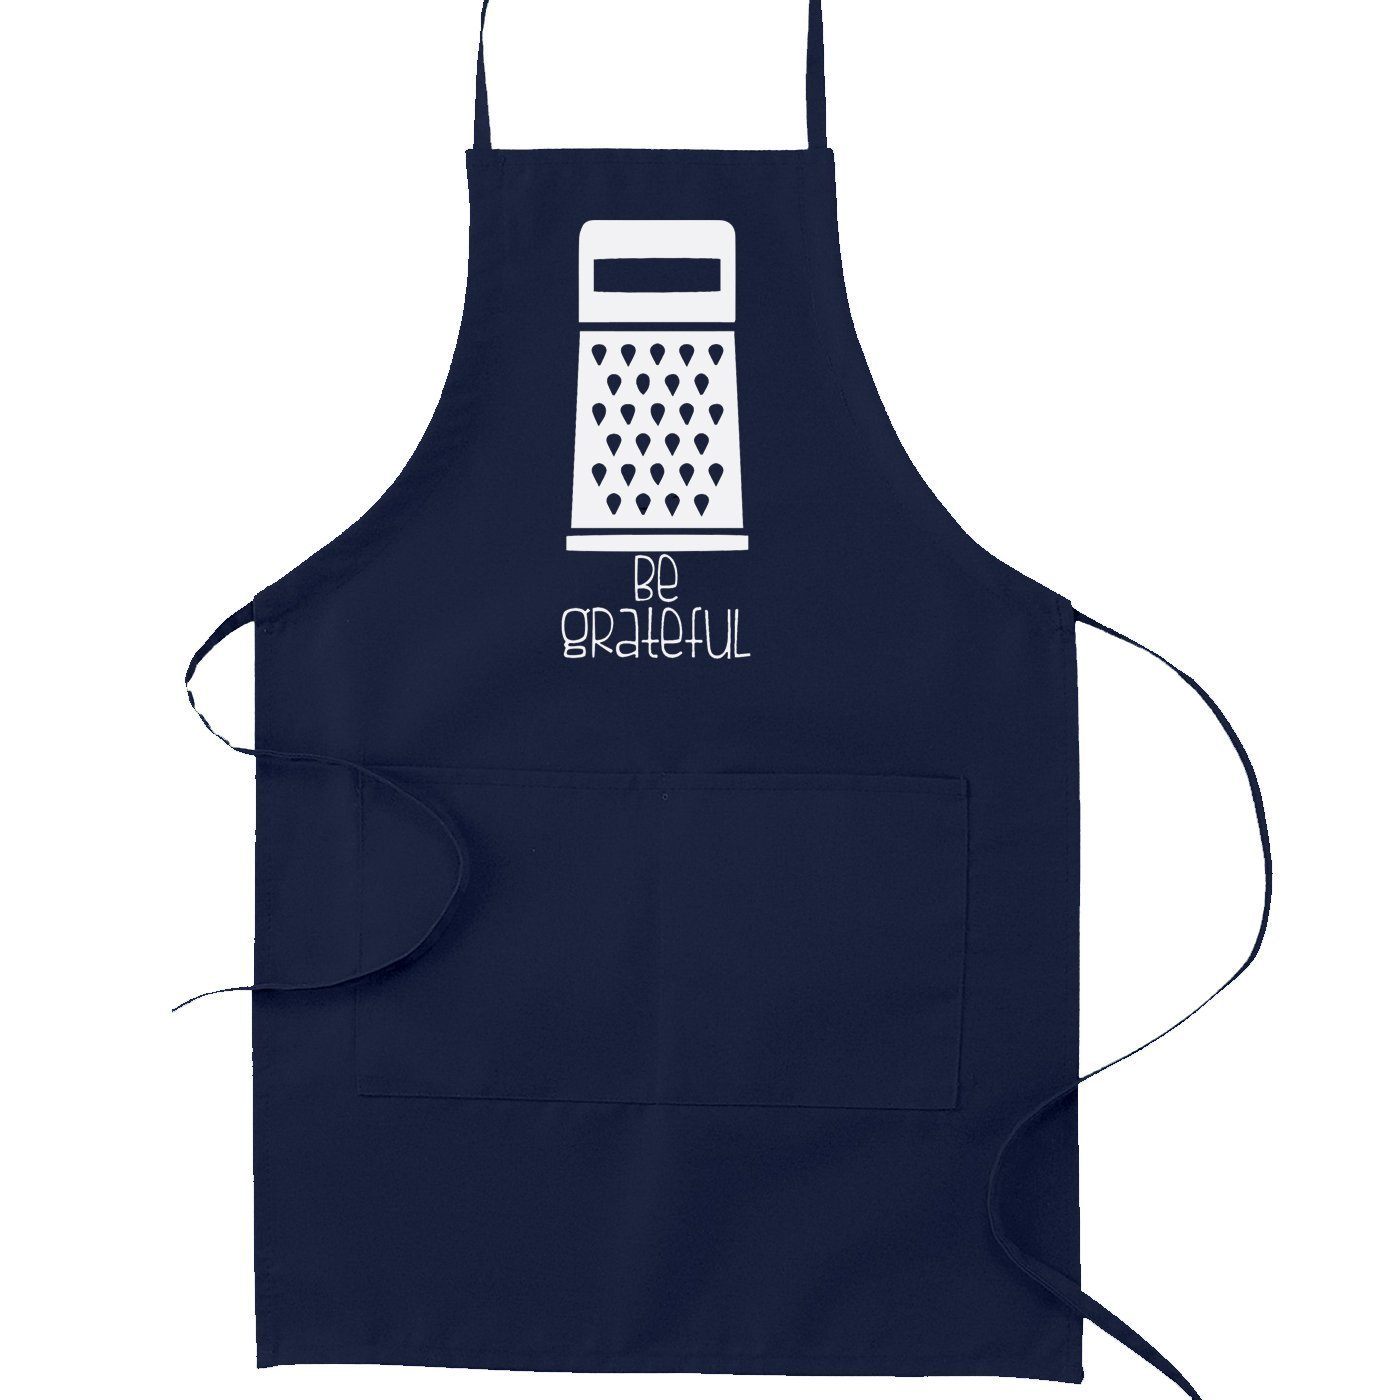 Be Grateful Cheese Grater Pun Funny Parody Cooking Bakingキッチンエプロン OneSize ブルー SP-00004KA-NB  ネイビーブルー B01NA00LW3